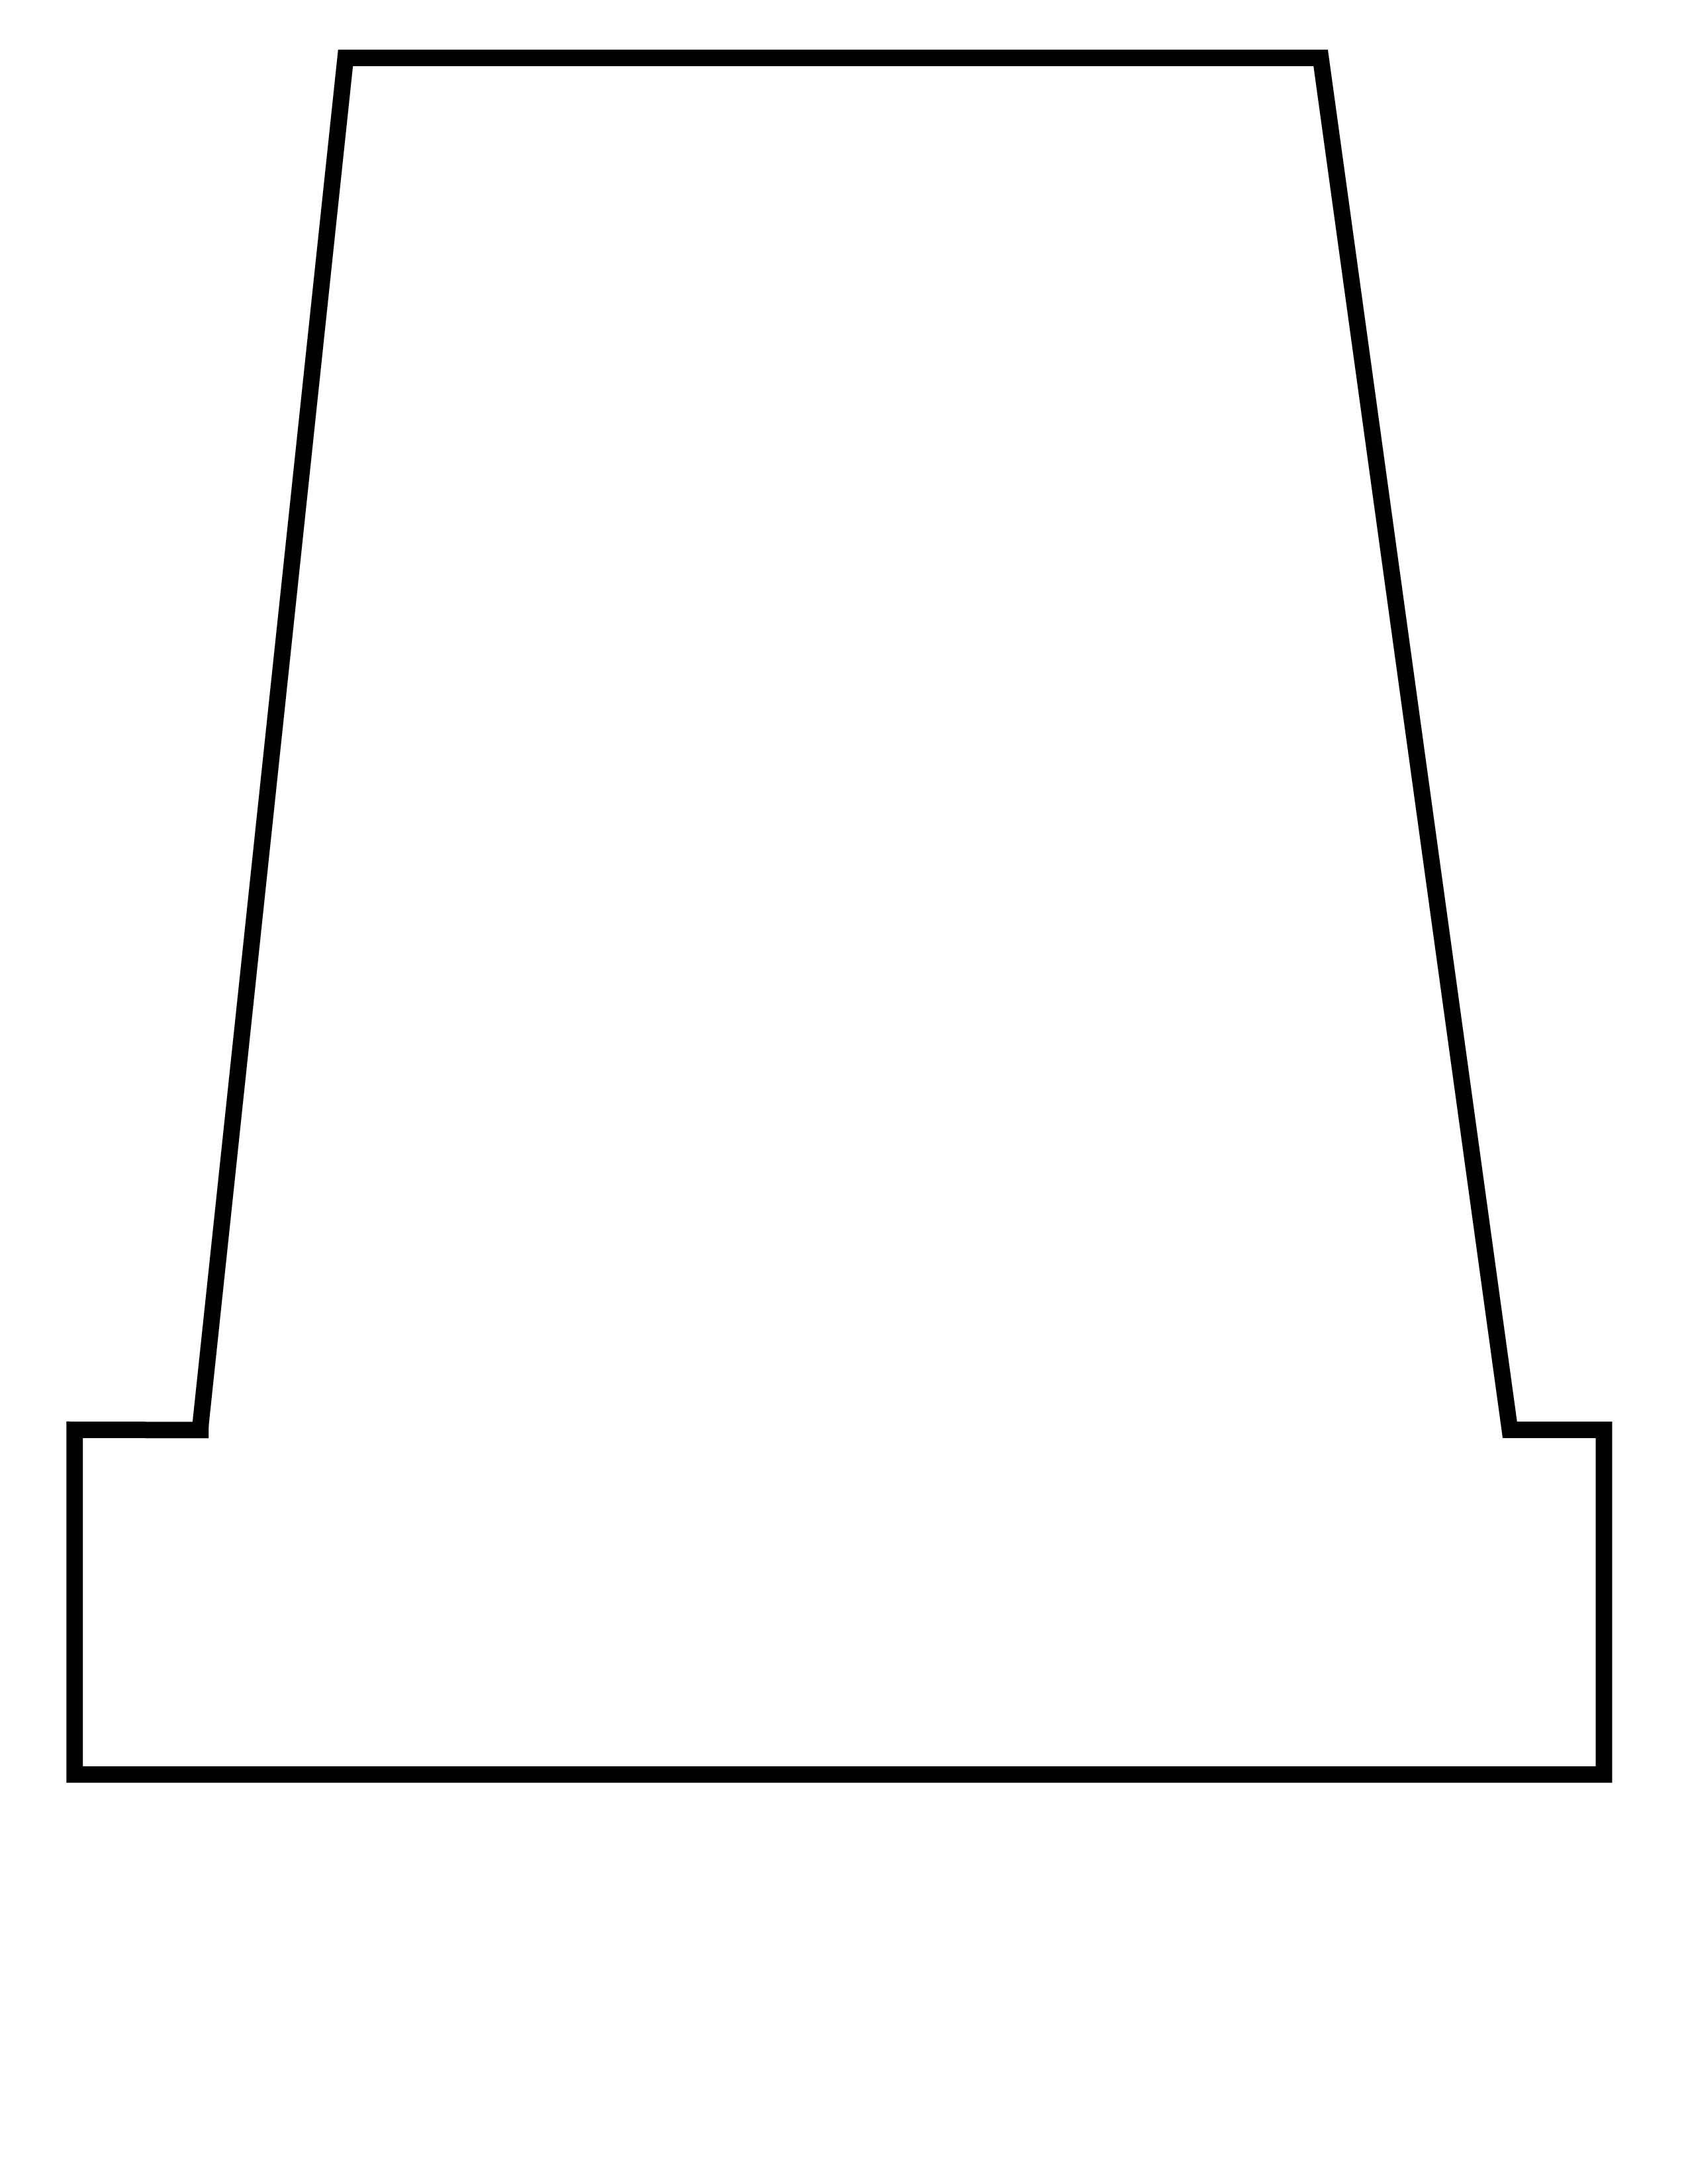 photo regarding Pilgrim Hat Printable called No cost Pilgrim hat printable for your cl! Toward position with each other